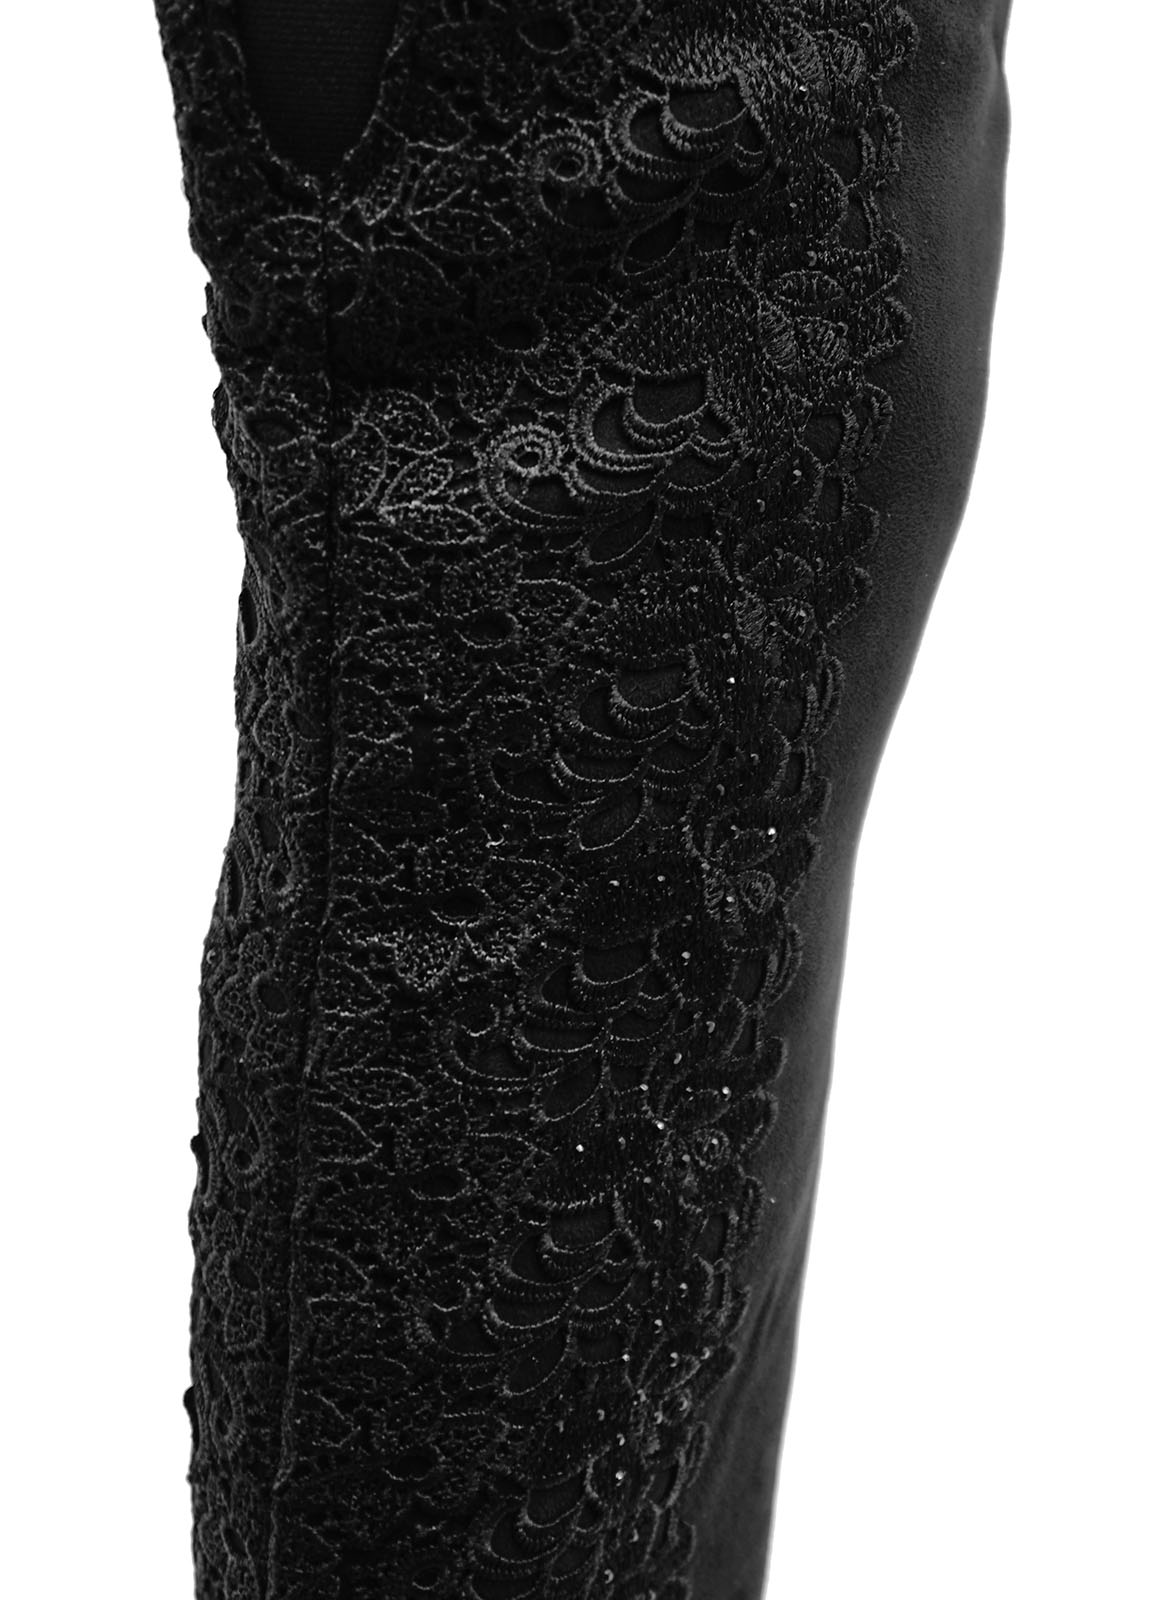 LADIES-BLACK-LACE-OVER-THE-KNEE-HIGH-ZIP-UP-STRETCH-PLATFORM-BOOTS-SHOES-UK-3-8 thumbnail 8